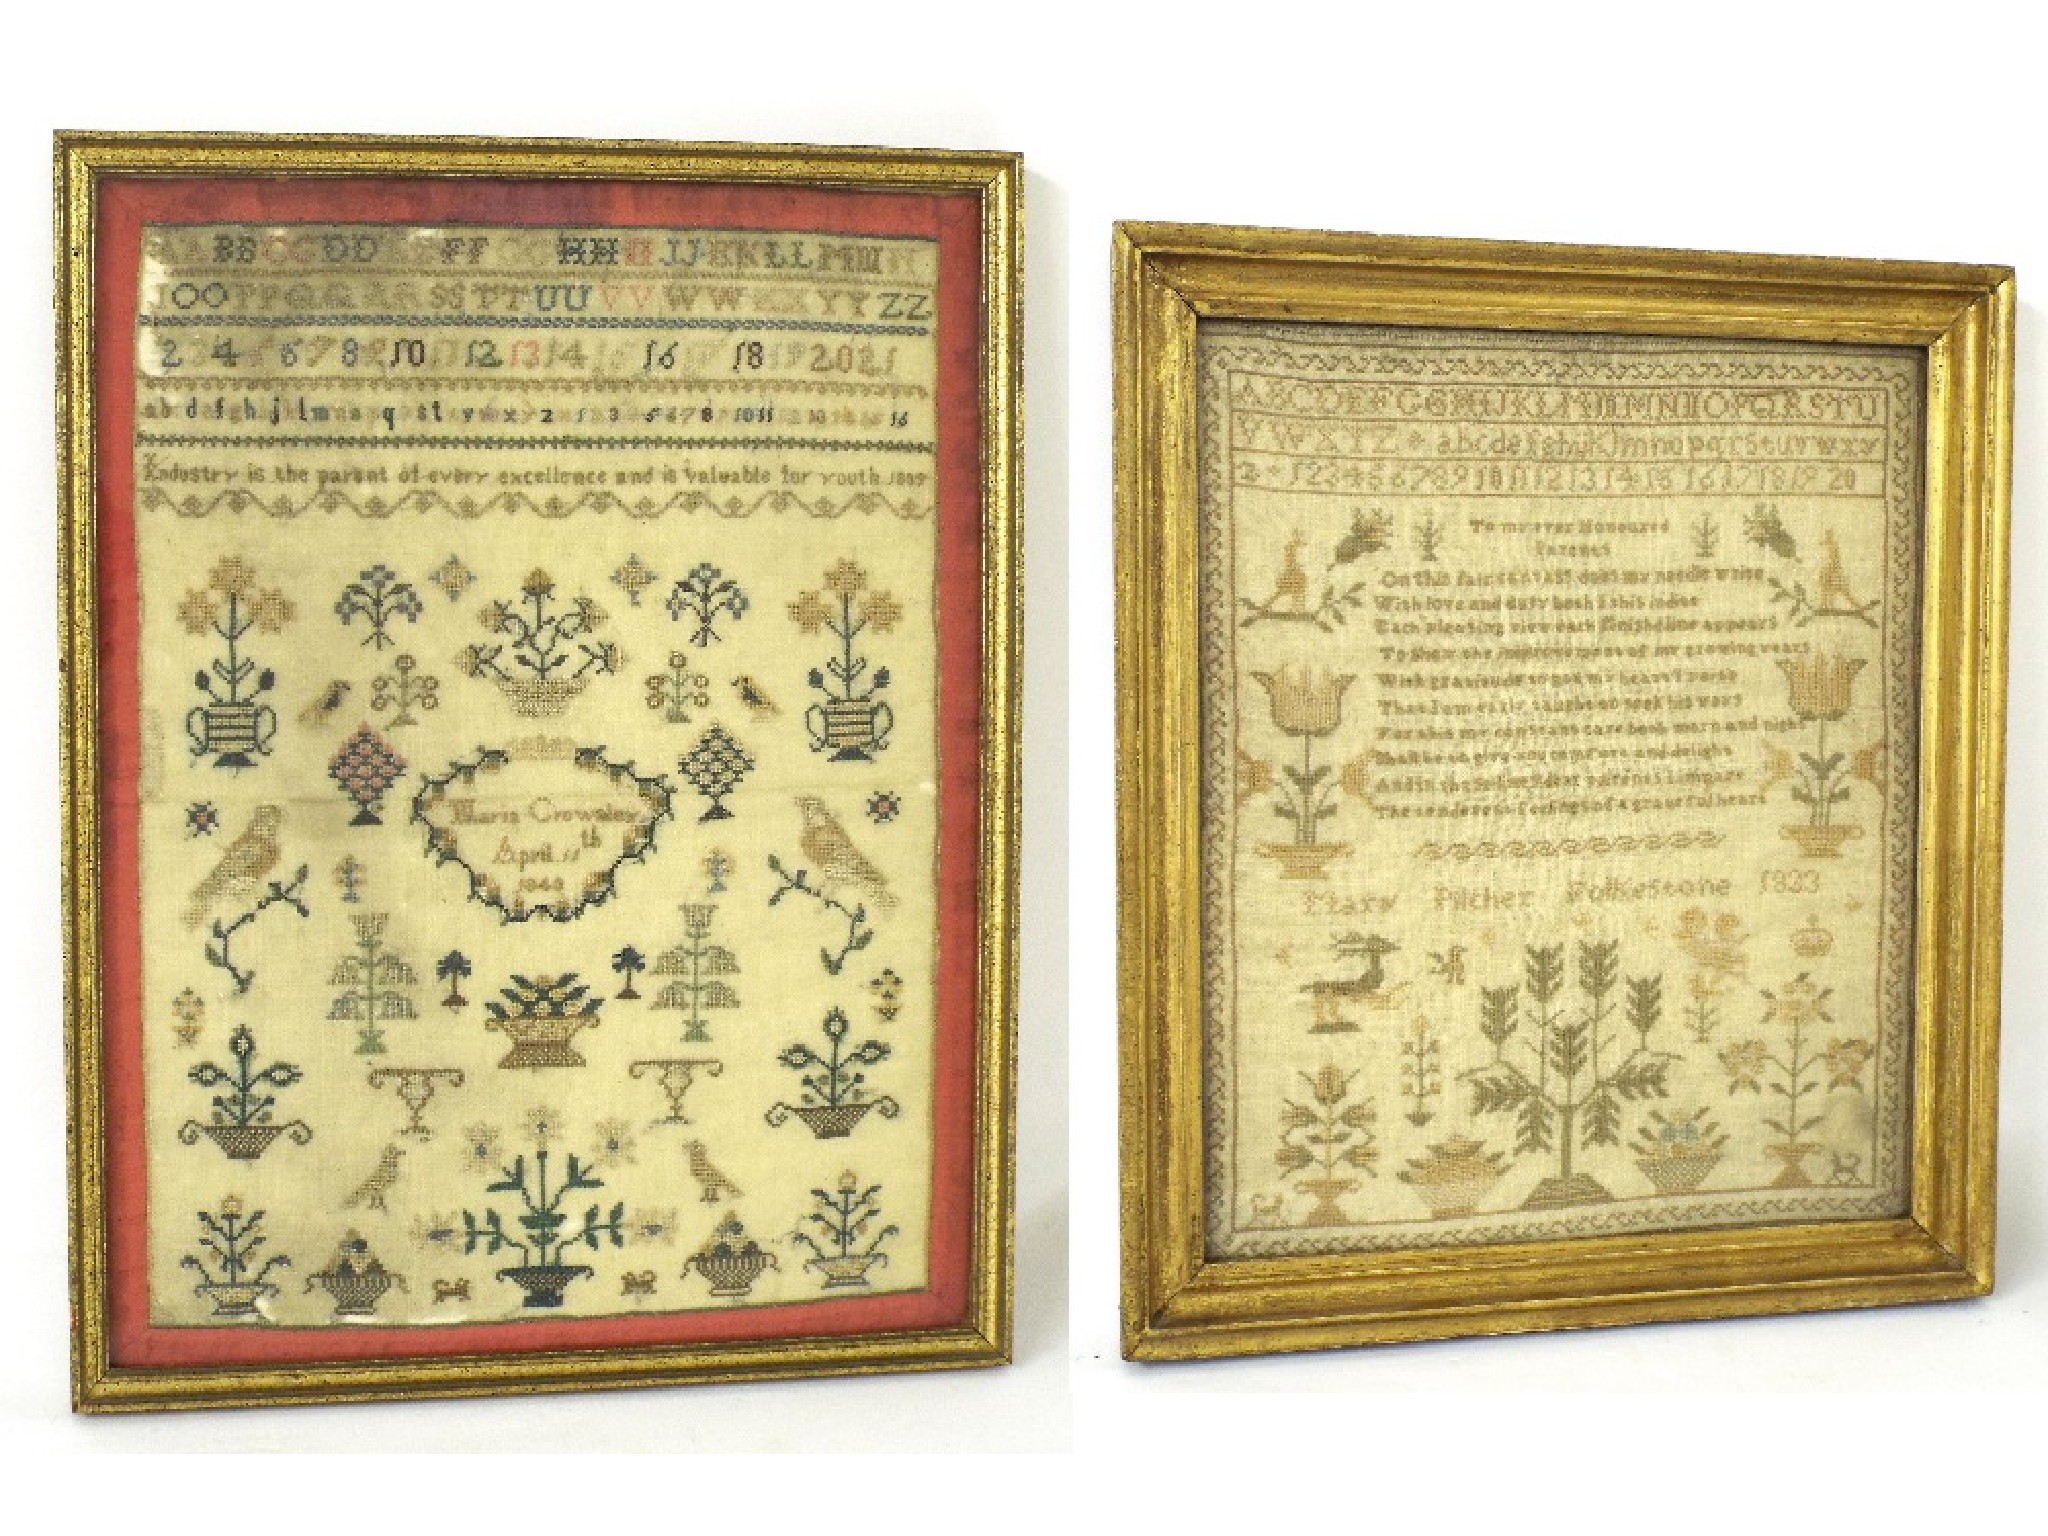 19th century woolwork tapestry by Mary Pilcher